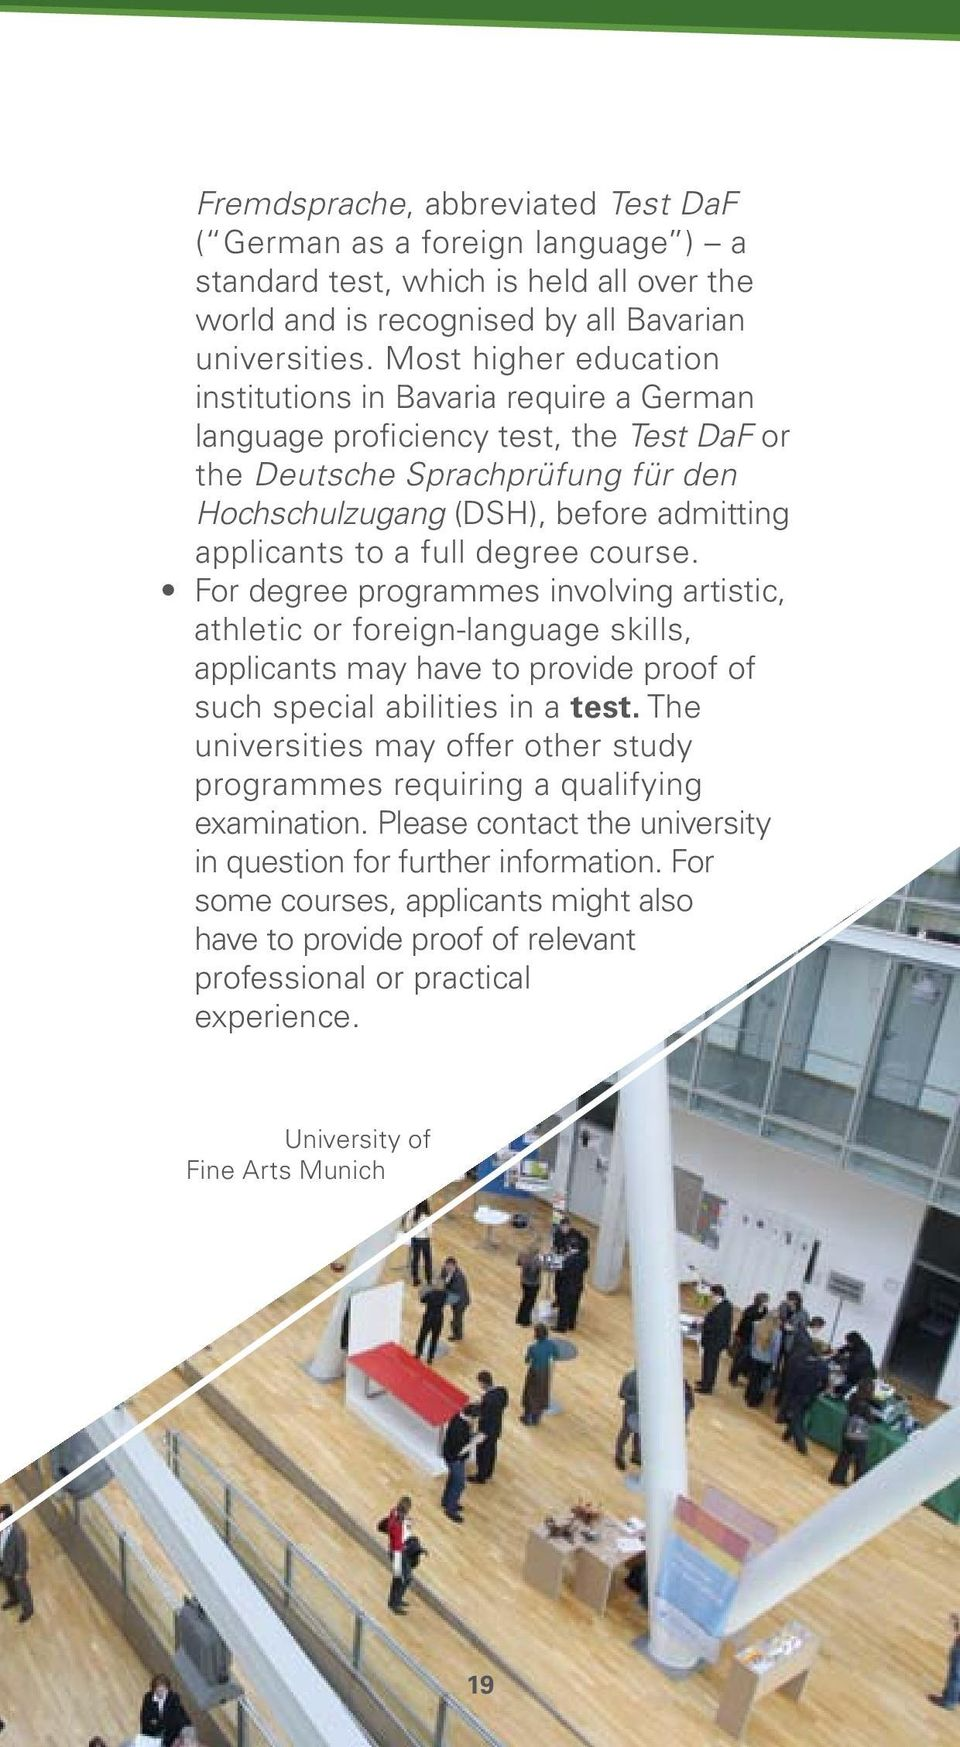 full degree course. For degree programmes involving artistic, athletic or foreign-language skills, applicants may have to provide proof of such special abilities in a test.